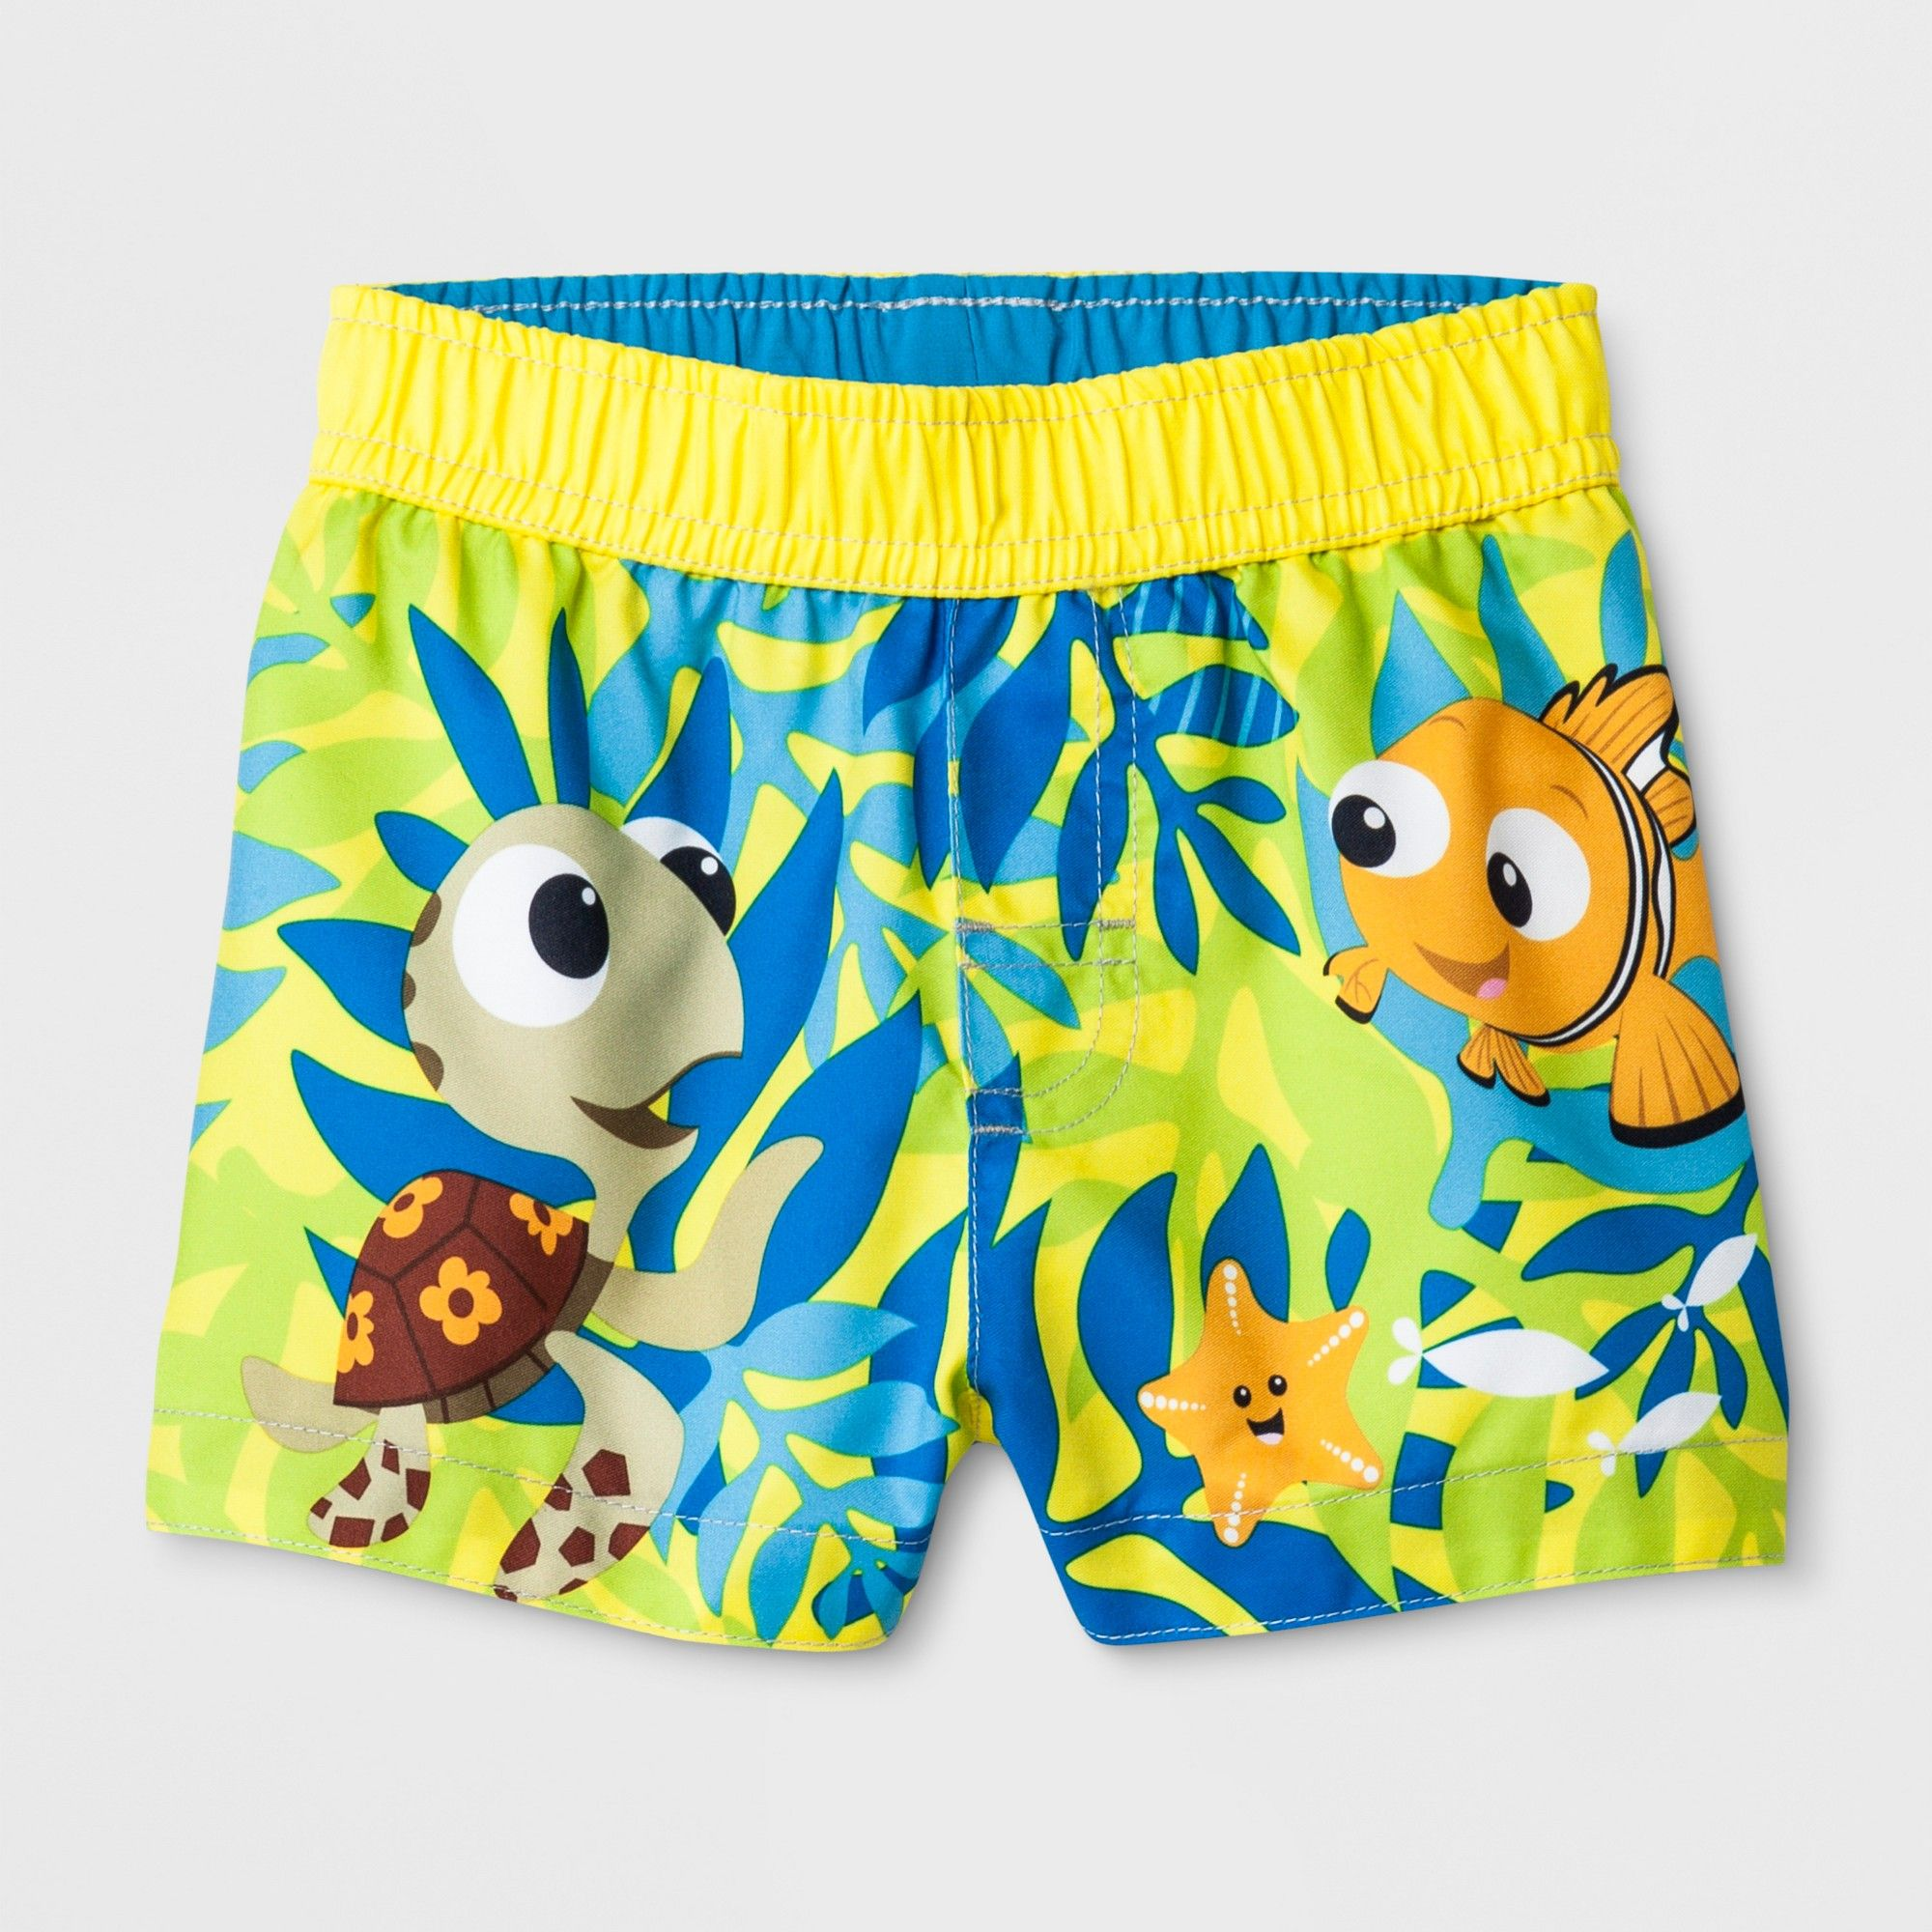 a699e6488e6b1 Baby Boys' Disney Finding Nemo Swim Trunks - Yellow 3-6M | Products ...